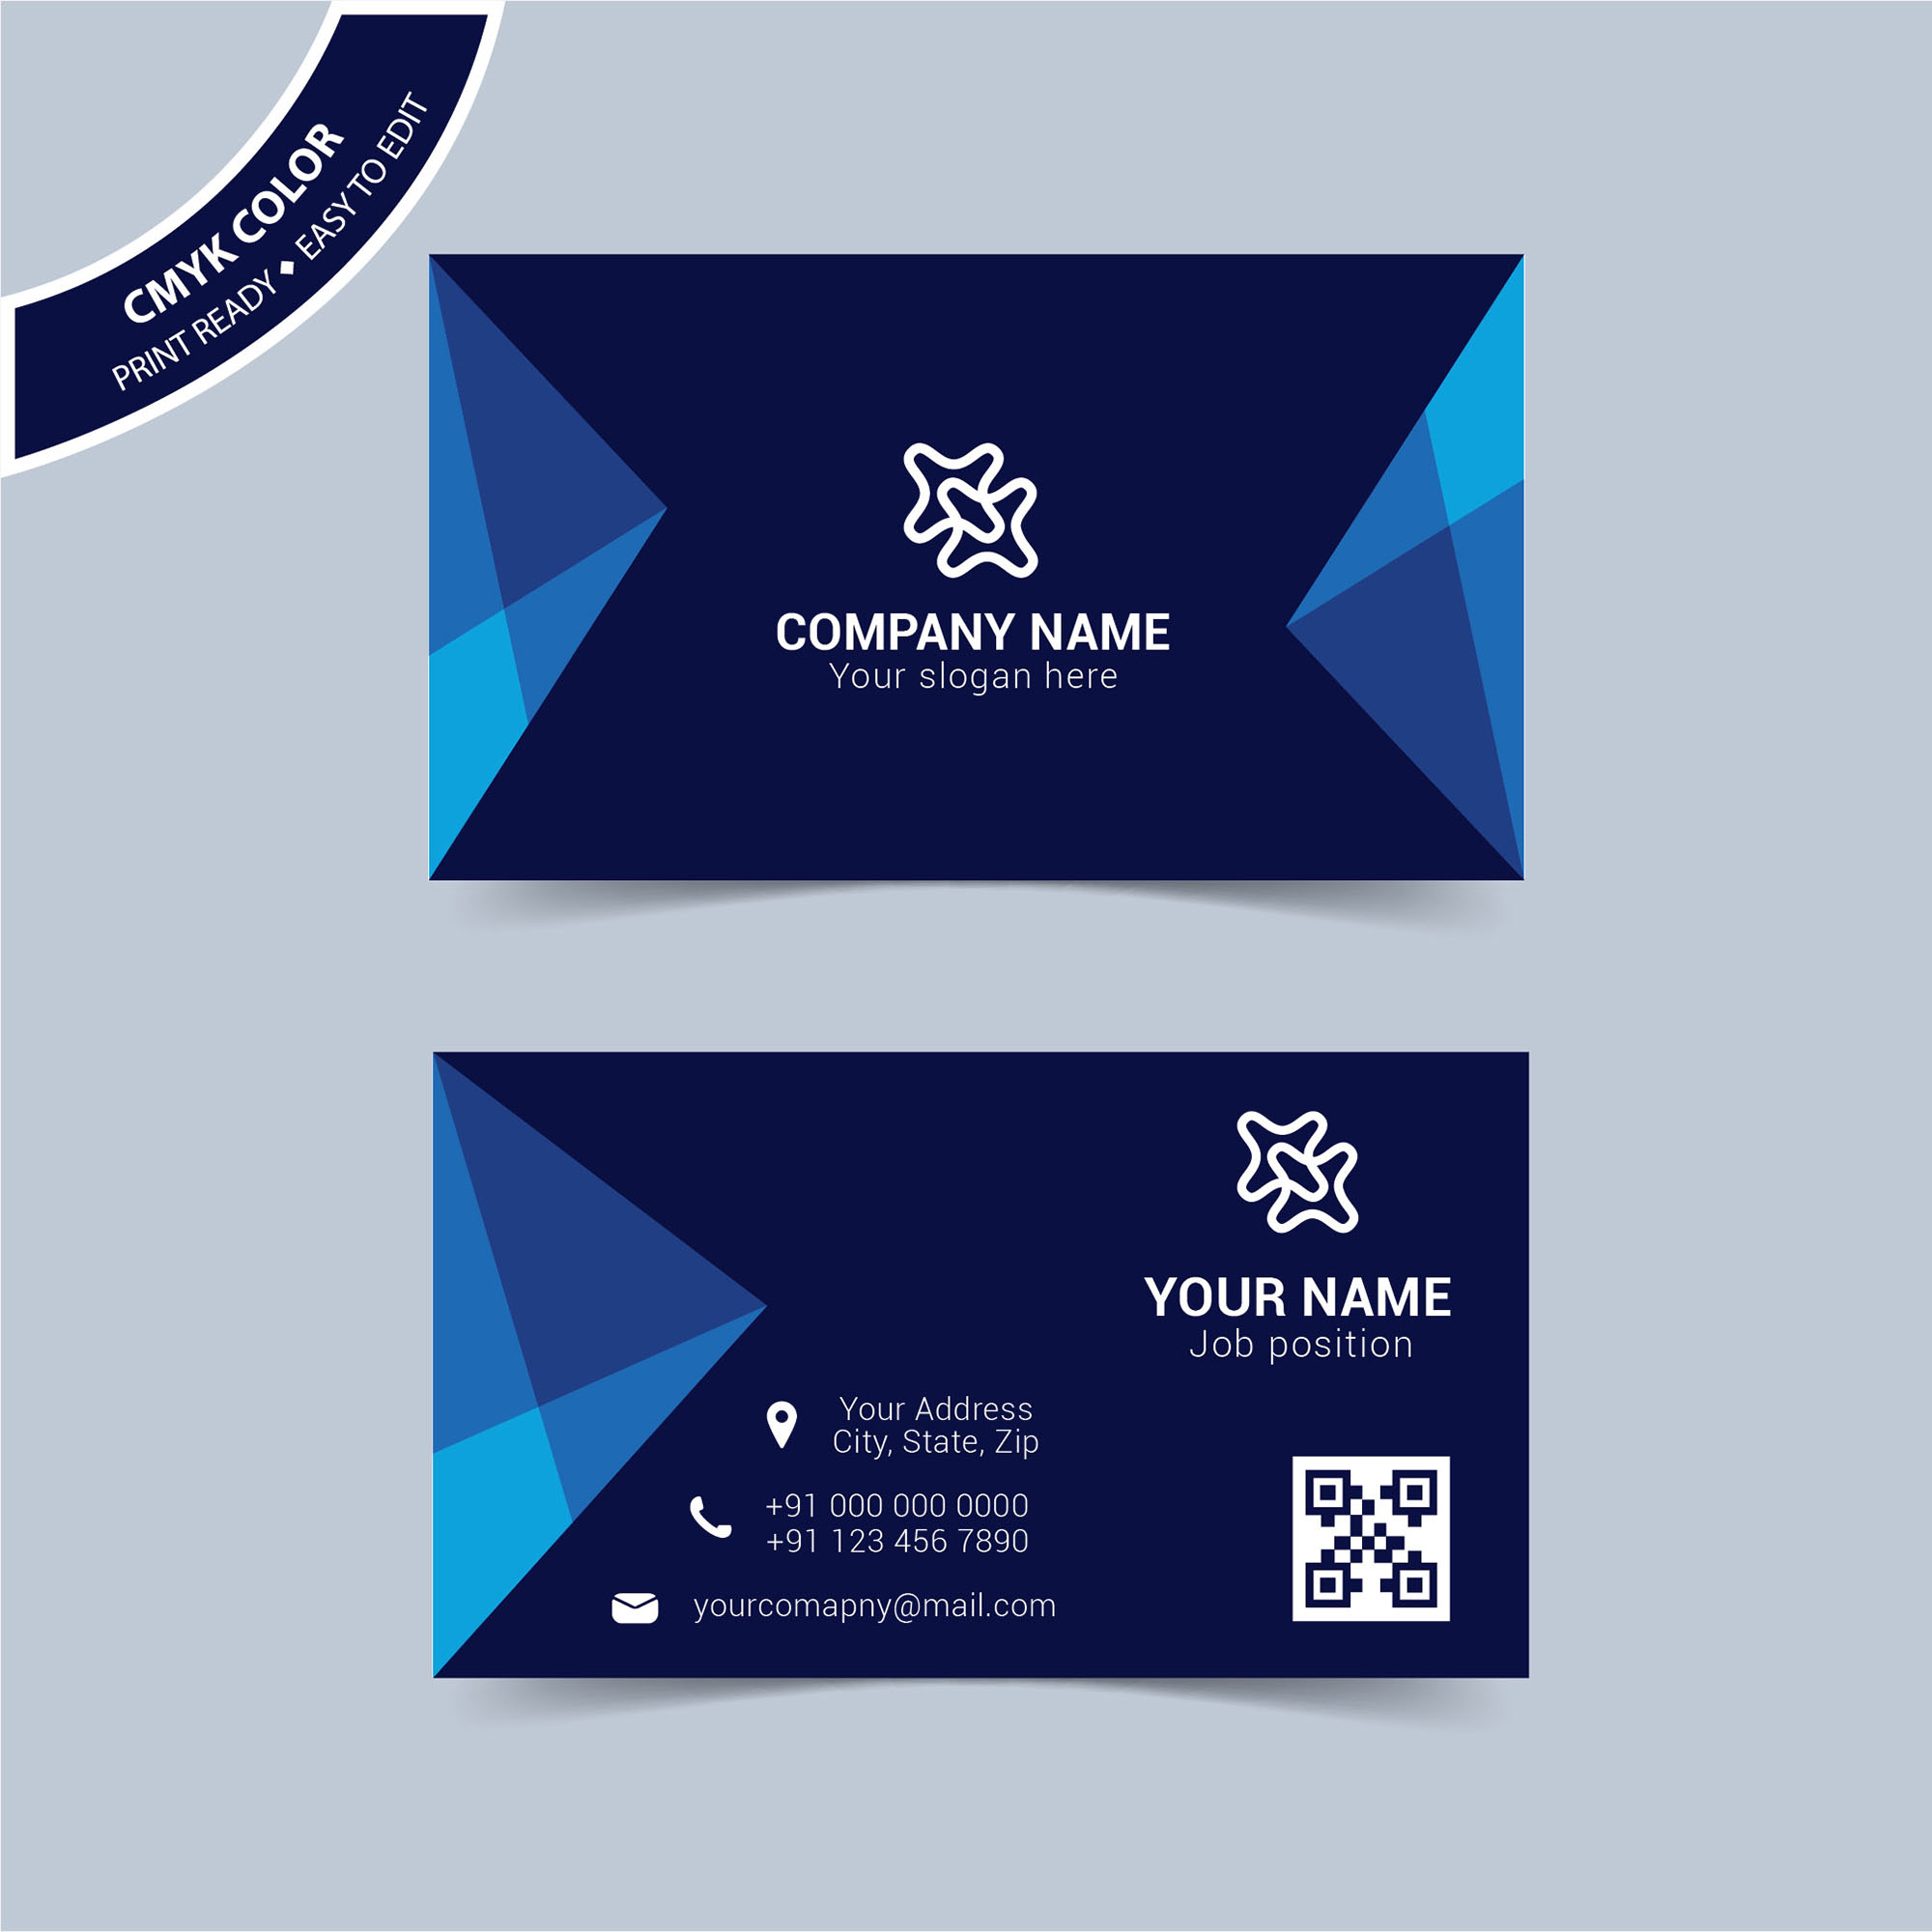 Modern blue business card template free download wisxi business card business cards business card design business card template design templates accmission